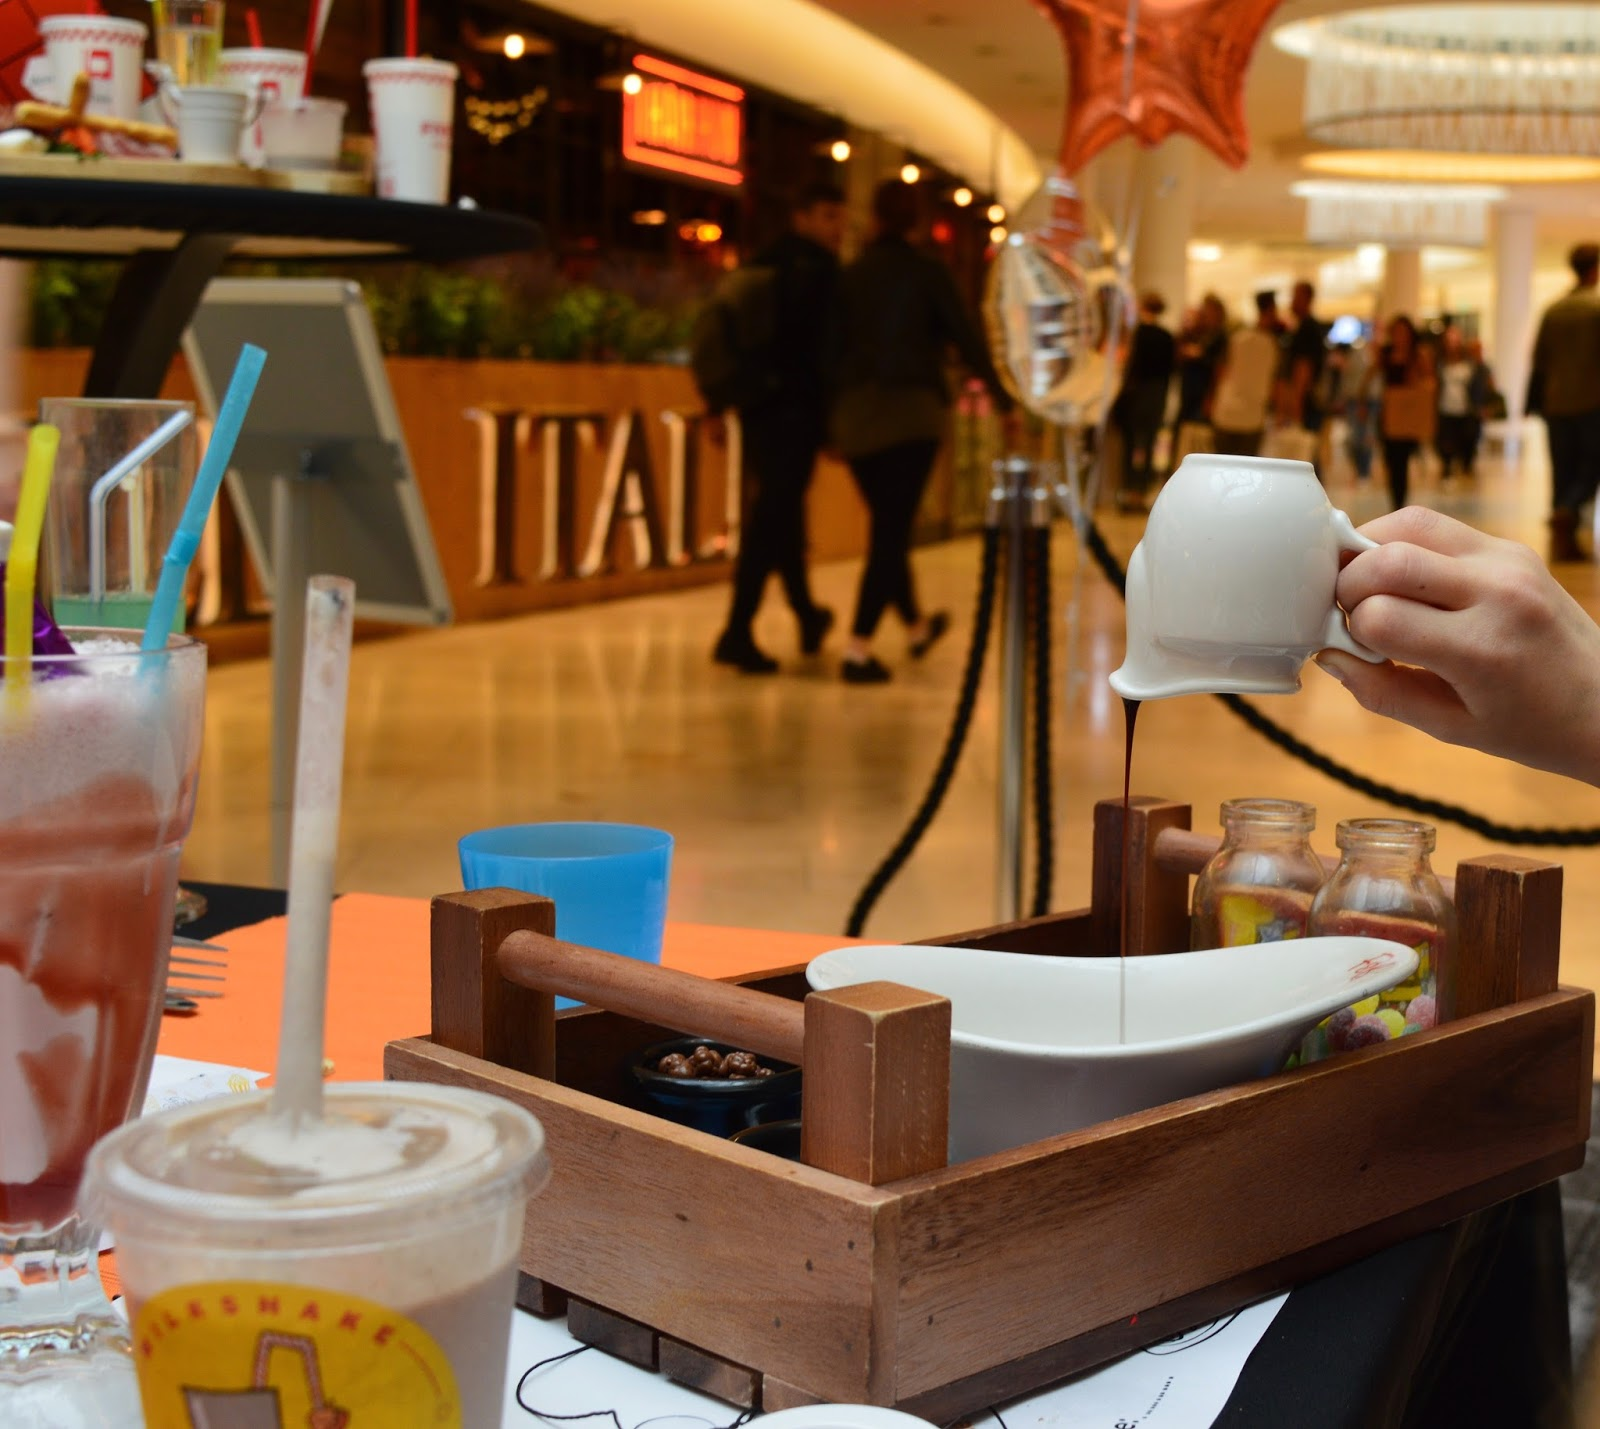 Our Guide to Family Restaurants & Children's Menus at intu Metrocentre - Ice Cream Candy Shop F&B's